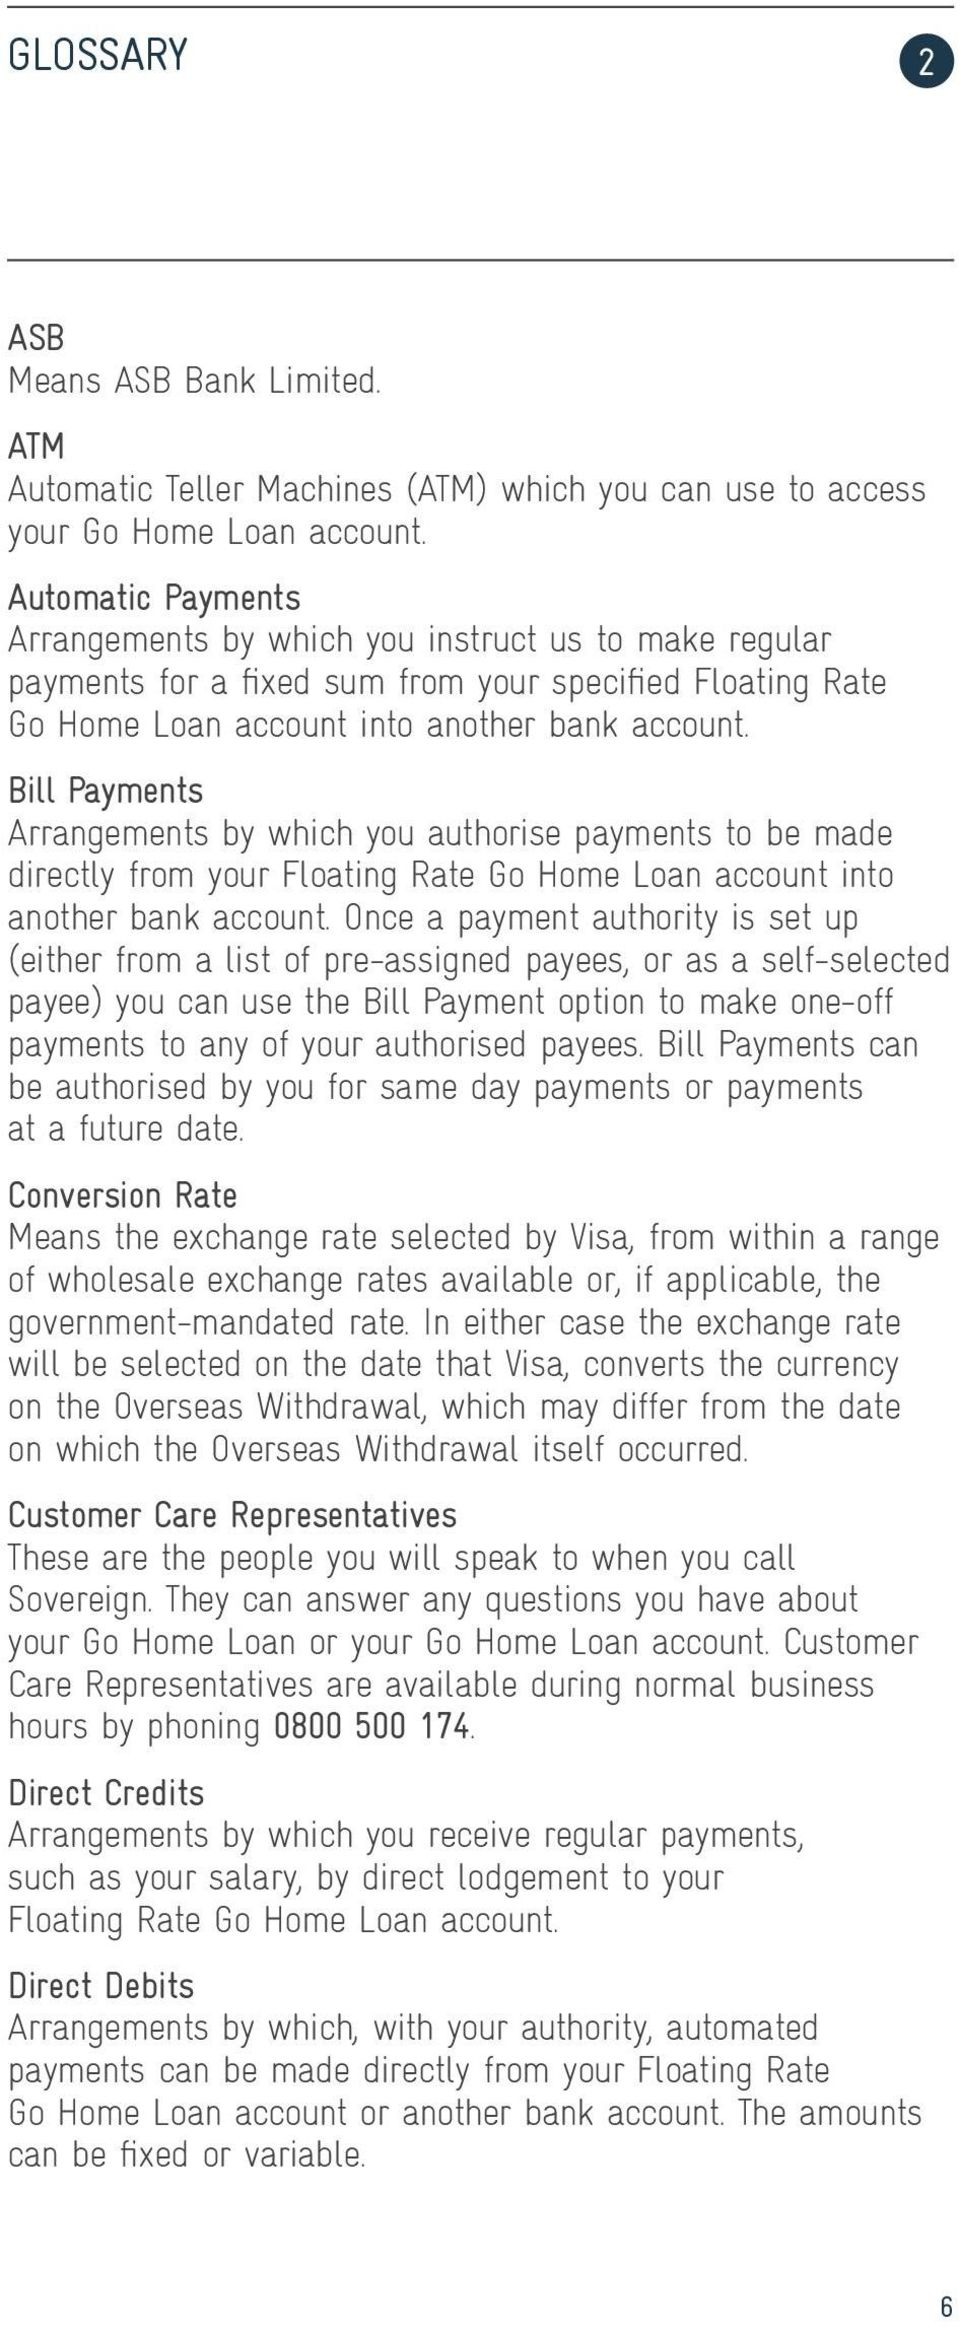 Bill Payments Arrangements by which you authorise payments to be made directly from your Floating Rate Go Home Loan account into another bank account.